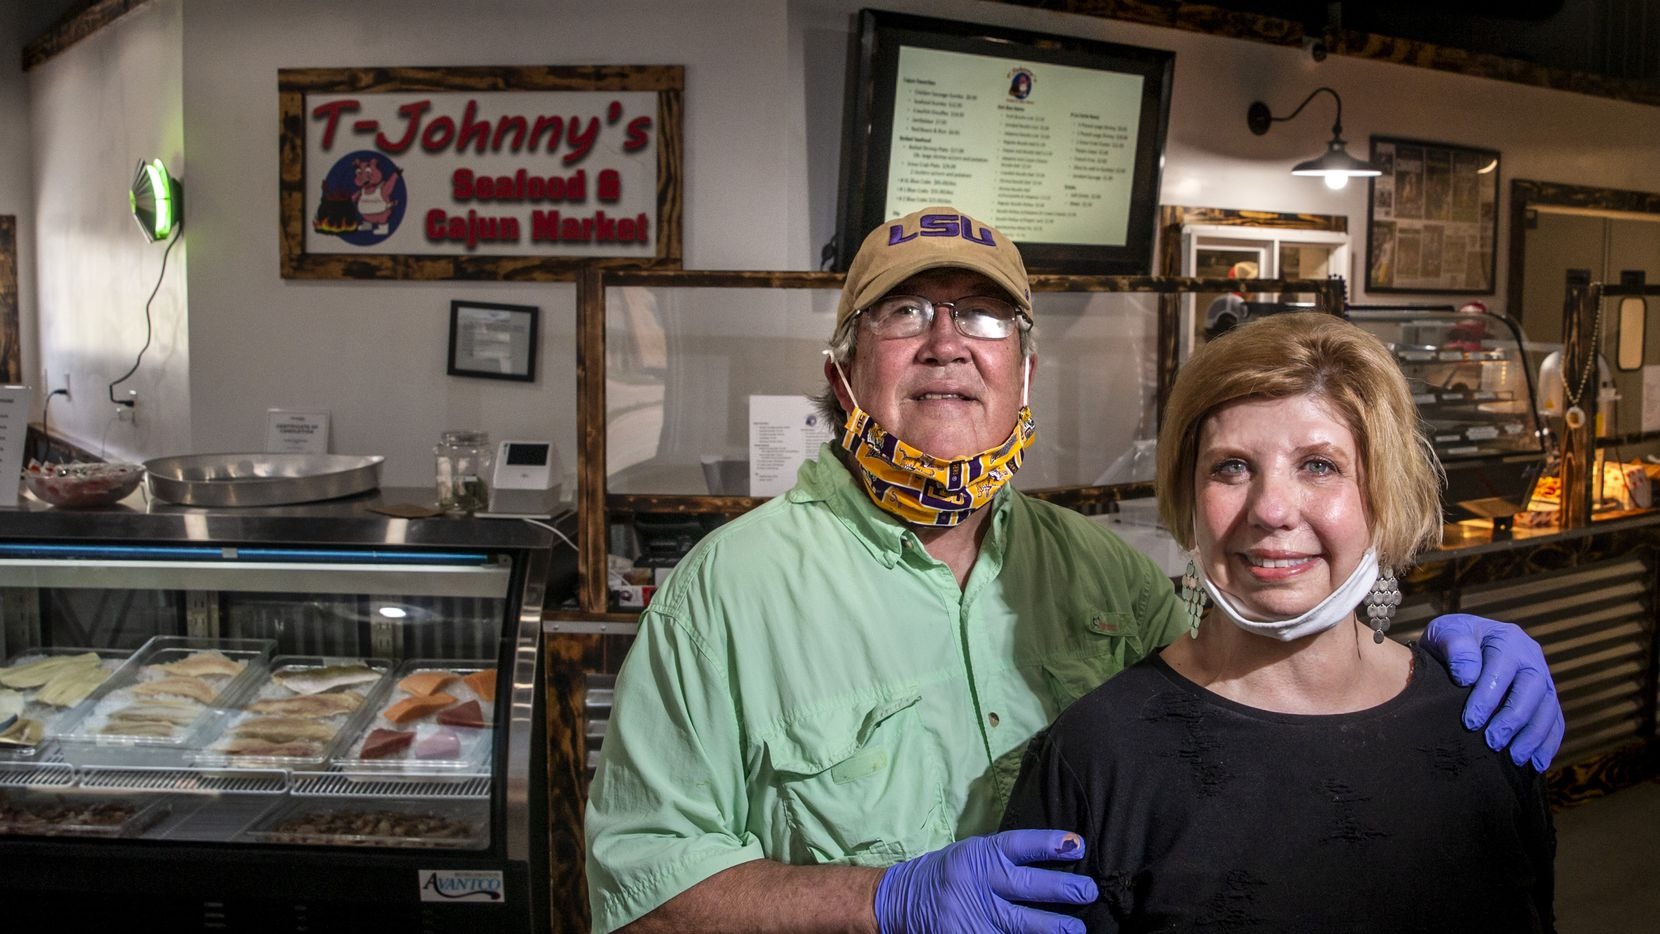 Phil Tullis and wife Deborah Allen-Tullis own The Cajun Market in Colleyville. They jumped to action on Fat Tuesday, when a nearby memory care facility put out a call for help.